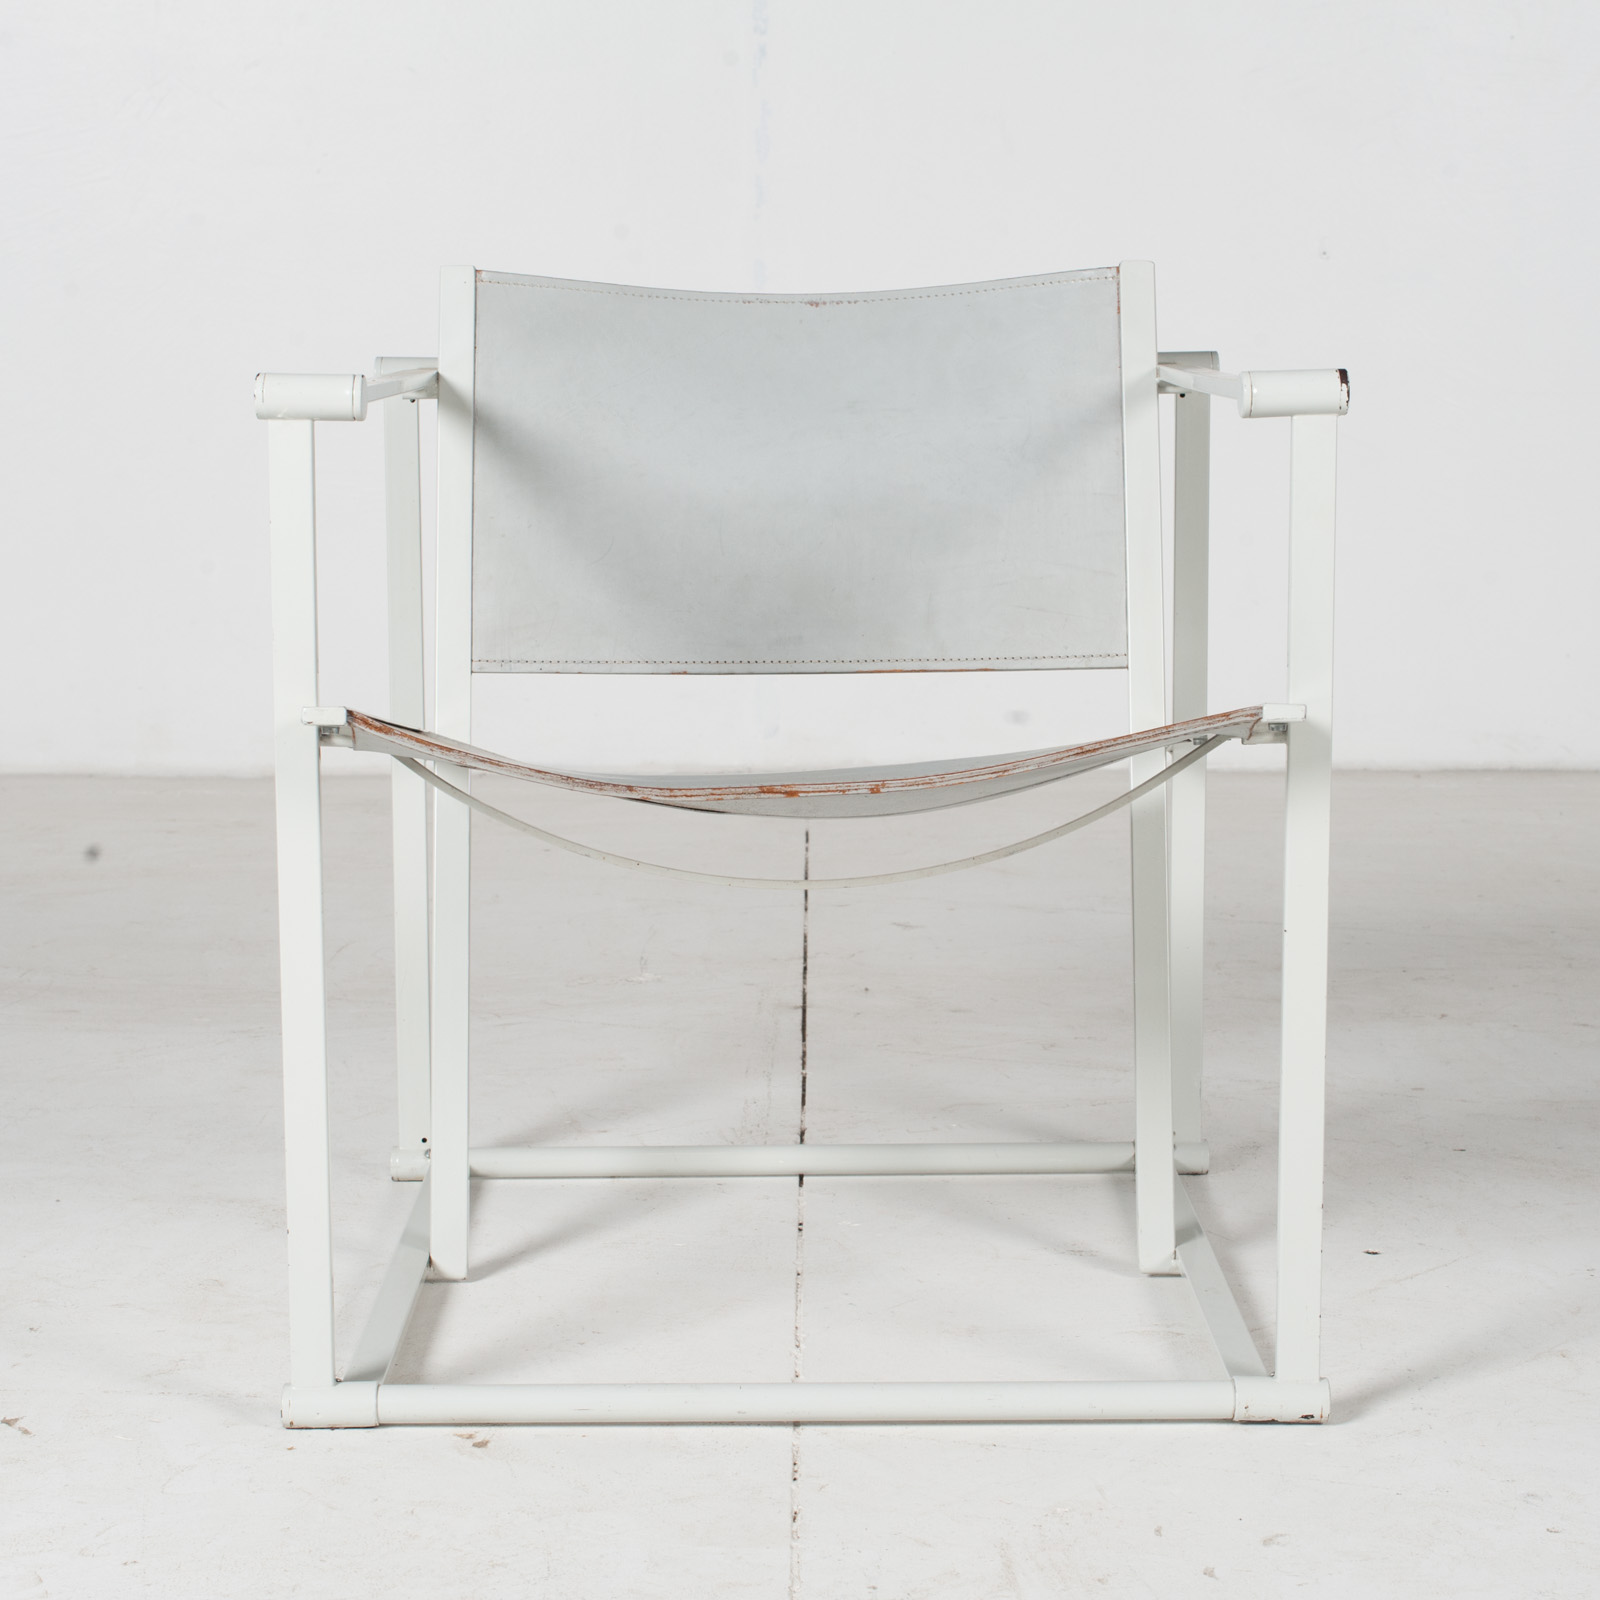 Fm60 Cubic Chairs In White Steel With Grey Leather By Radboud Van Beekum For Pastoe, The Netherlands1